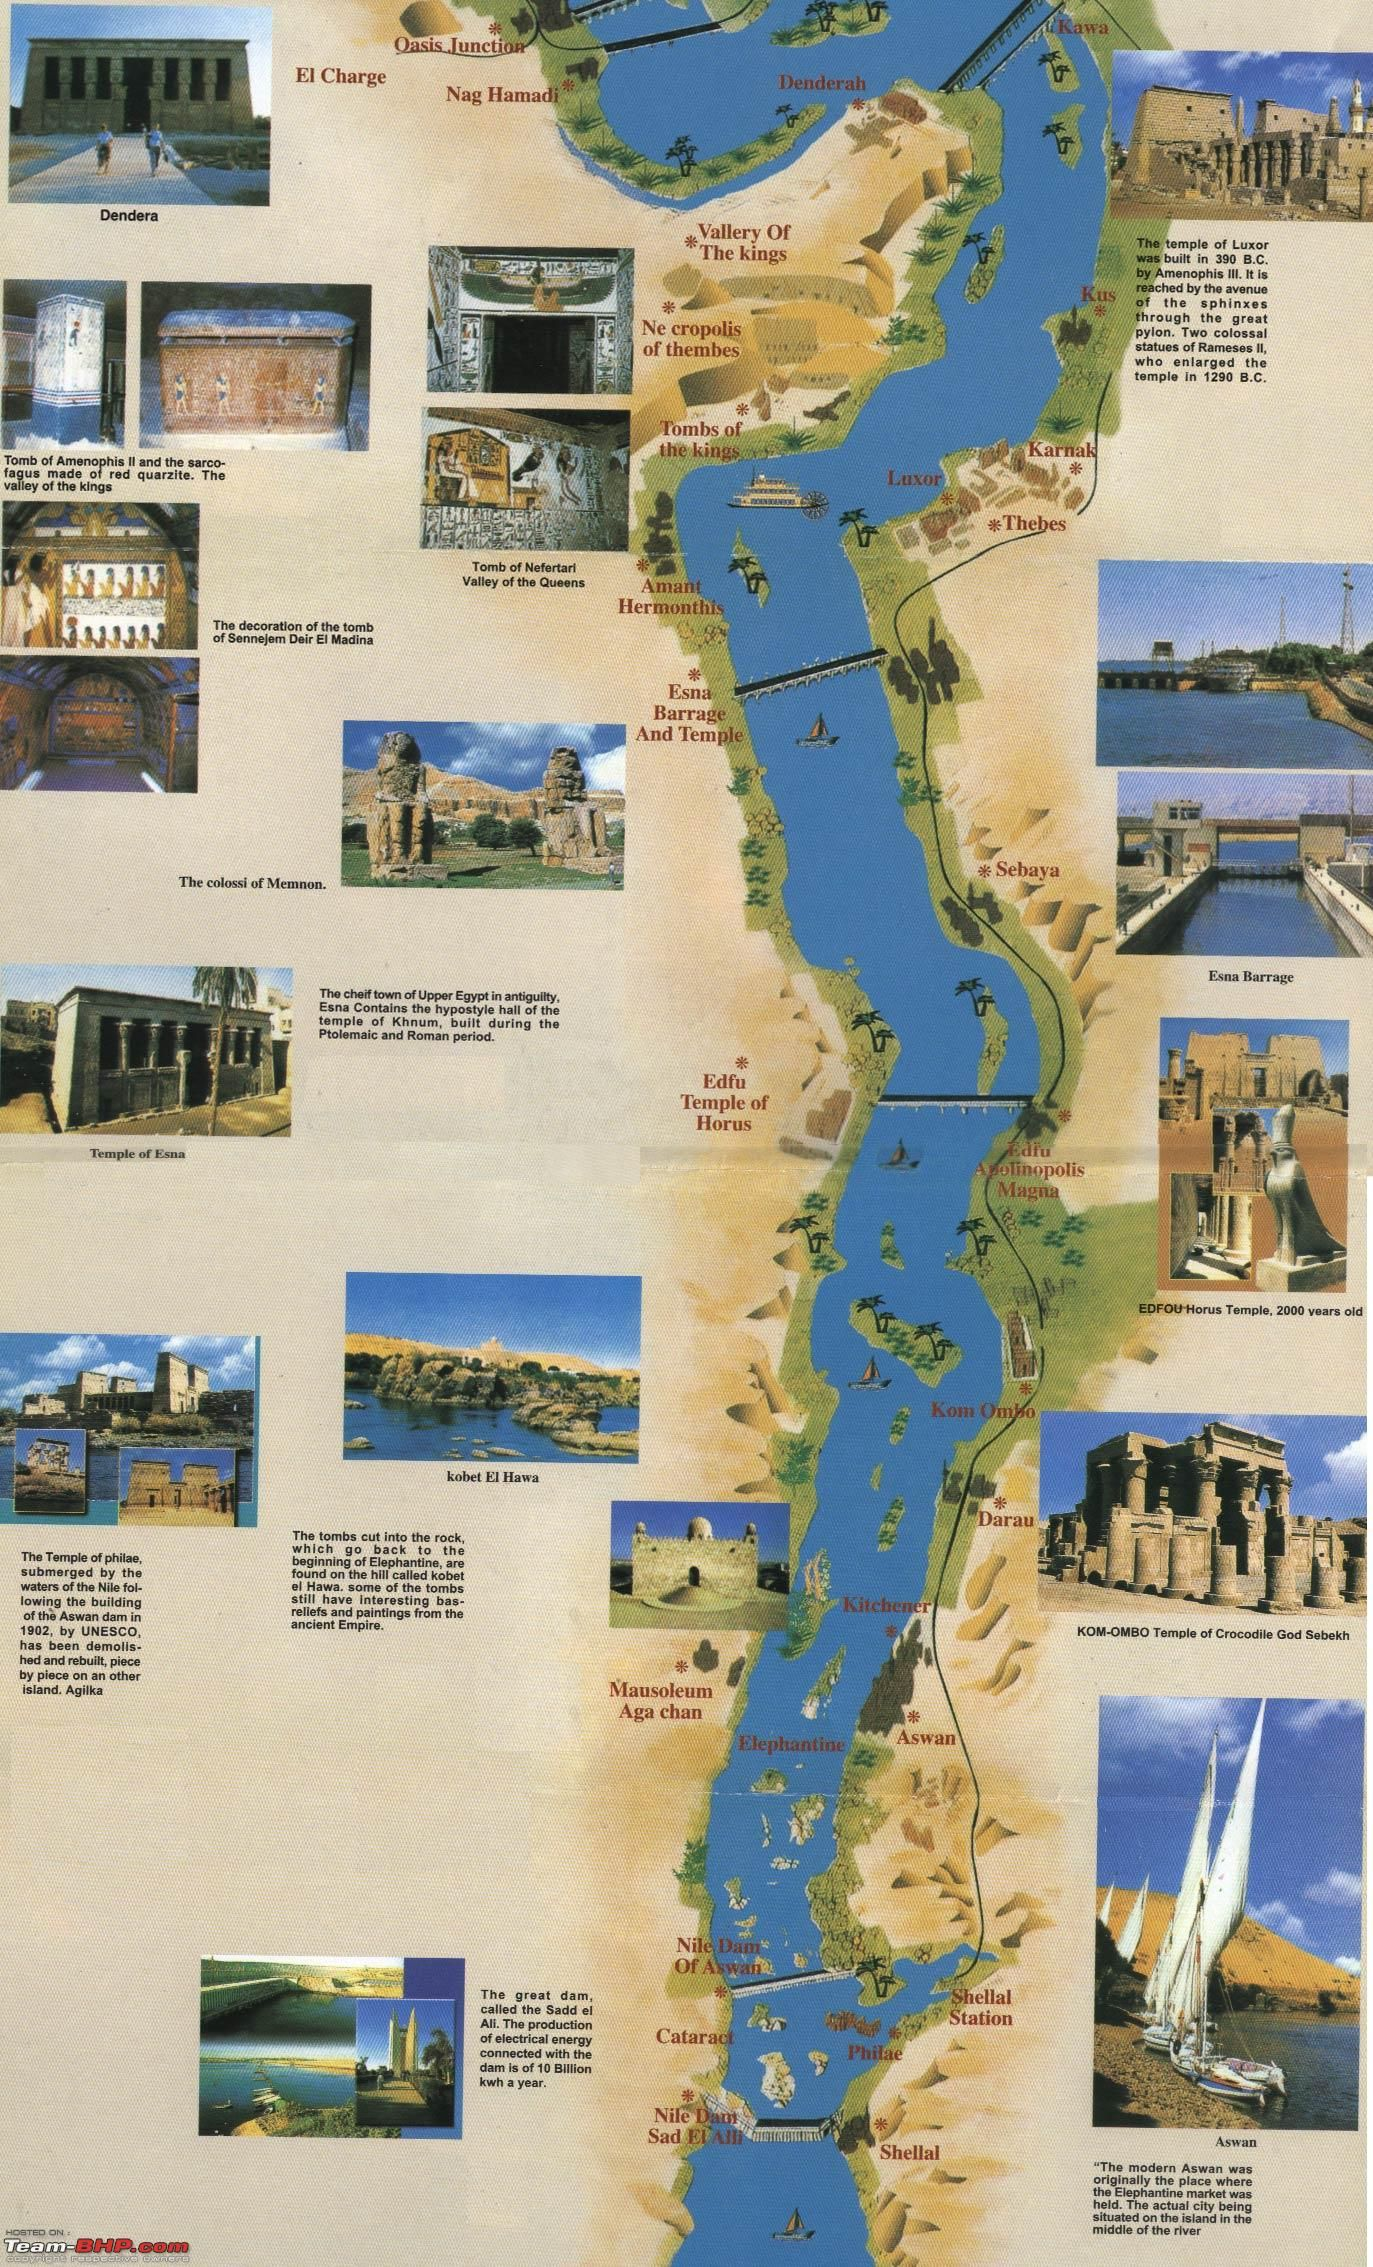 dmyegyptdaysphotologuenilecruiseroutemap  - egypt's touristic attractions places of interest along nile